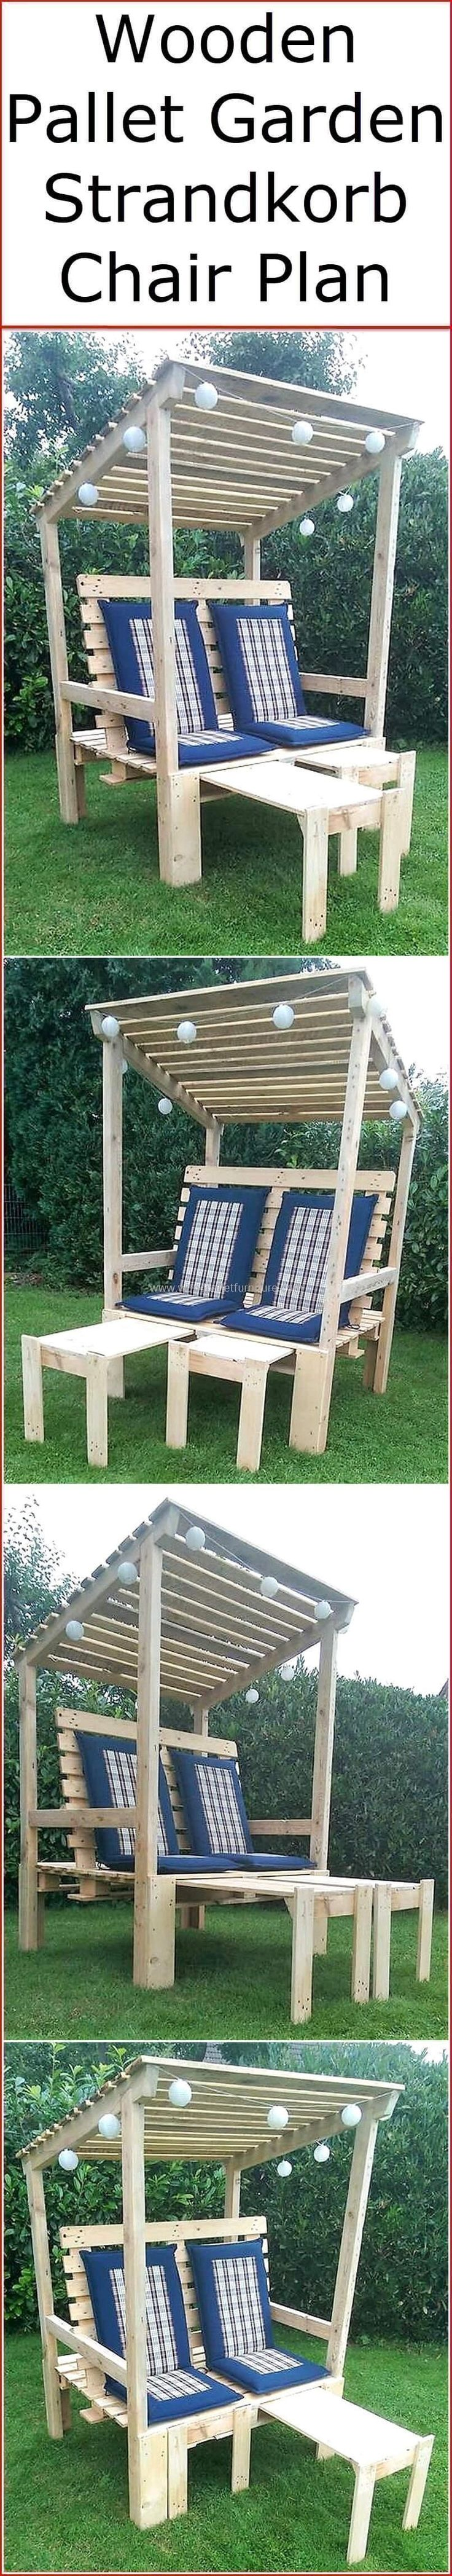 This recycled wood pallet garden strandkorb chair plan will able you to craft a stylish and fascinating wooden project for your comfortable relax in your garden area. This pallet innovation is not only simple to create but also best to serve you in two ways. #pallets #woodpallet #palletfurniture #palletproject #palletideas #recycle #recycledpallet #reclaimed #repurposed #reused #restore #upcycle #diy #palletart #pallet #recycling #upcycling #refurnish #recycled #woodwork #woodworking